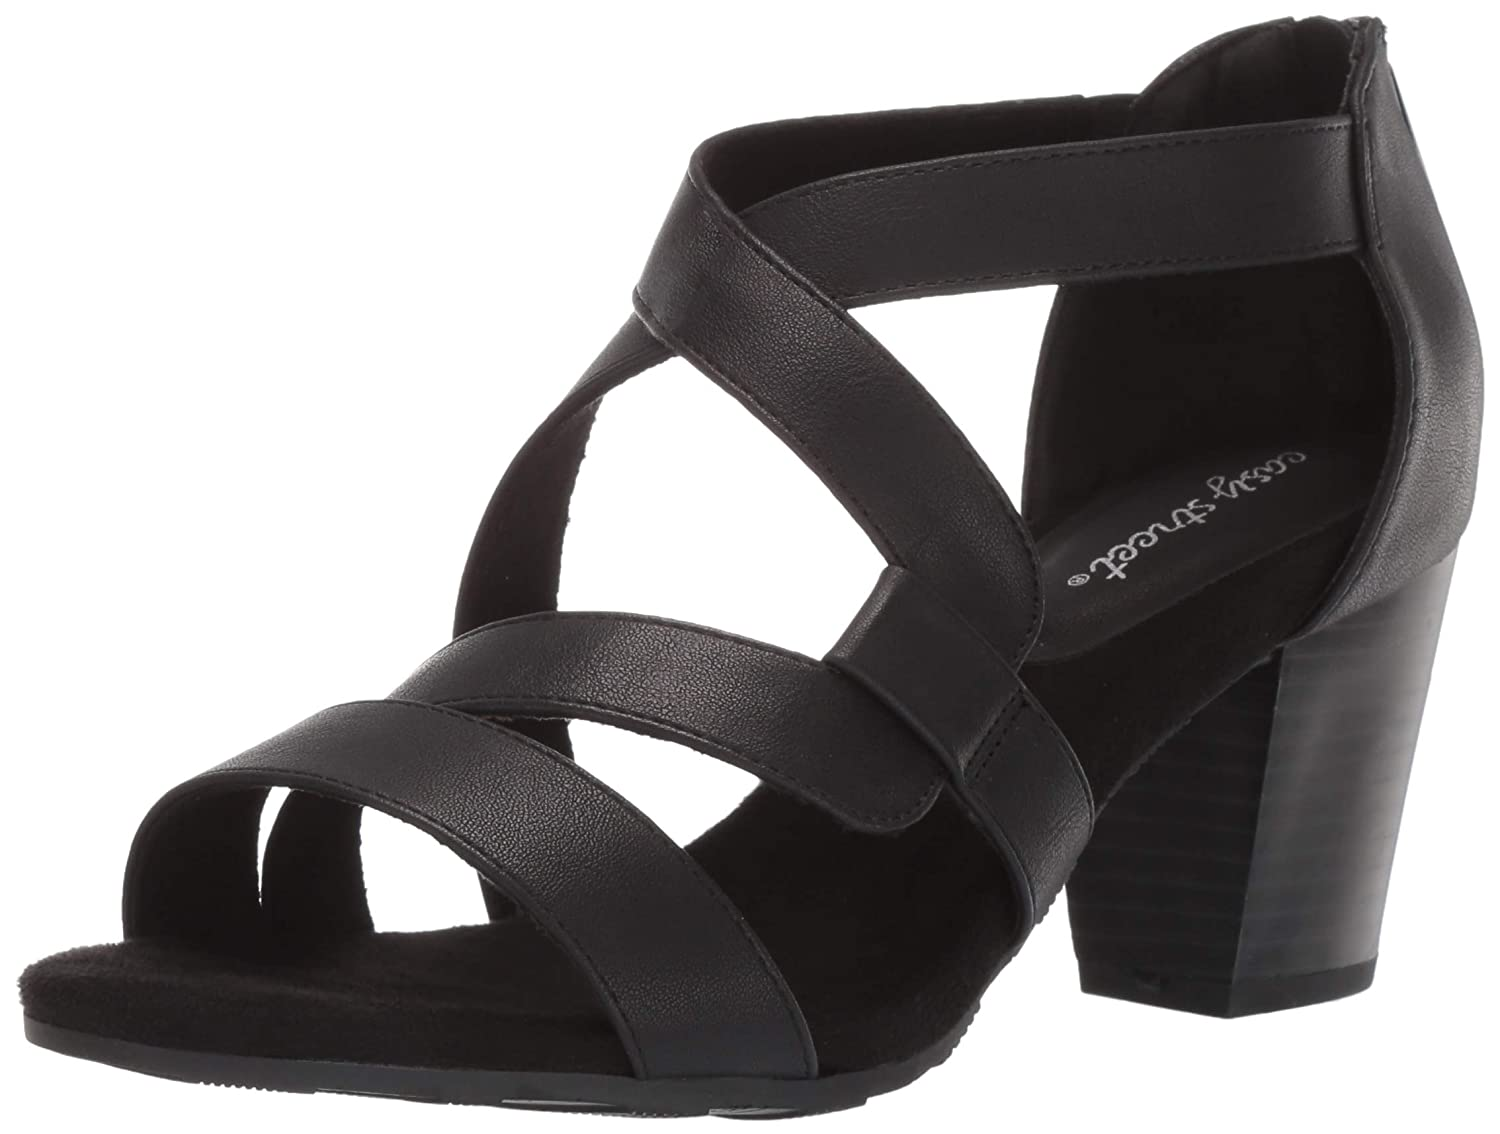 Black Easy Street Womens Amuse Dress Casual Sandal with Back Zipper Heeled Sandal